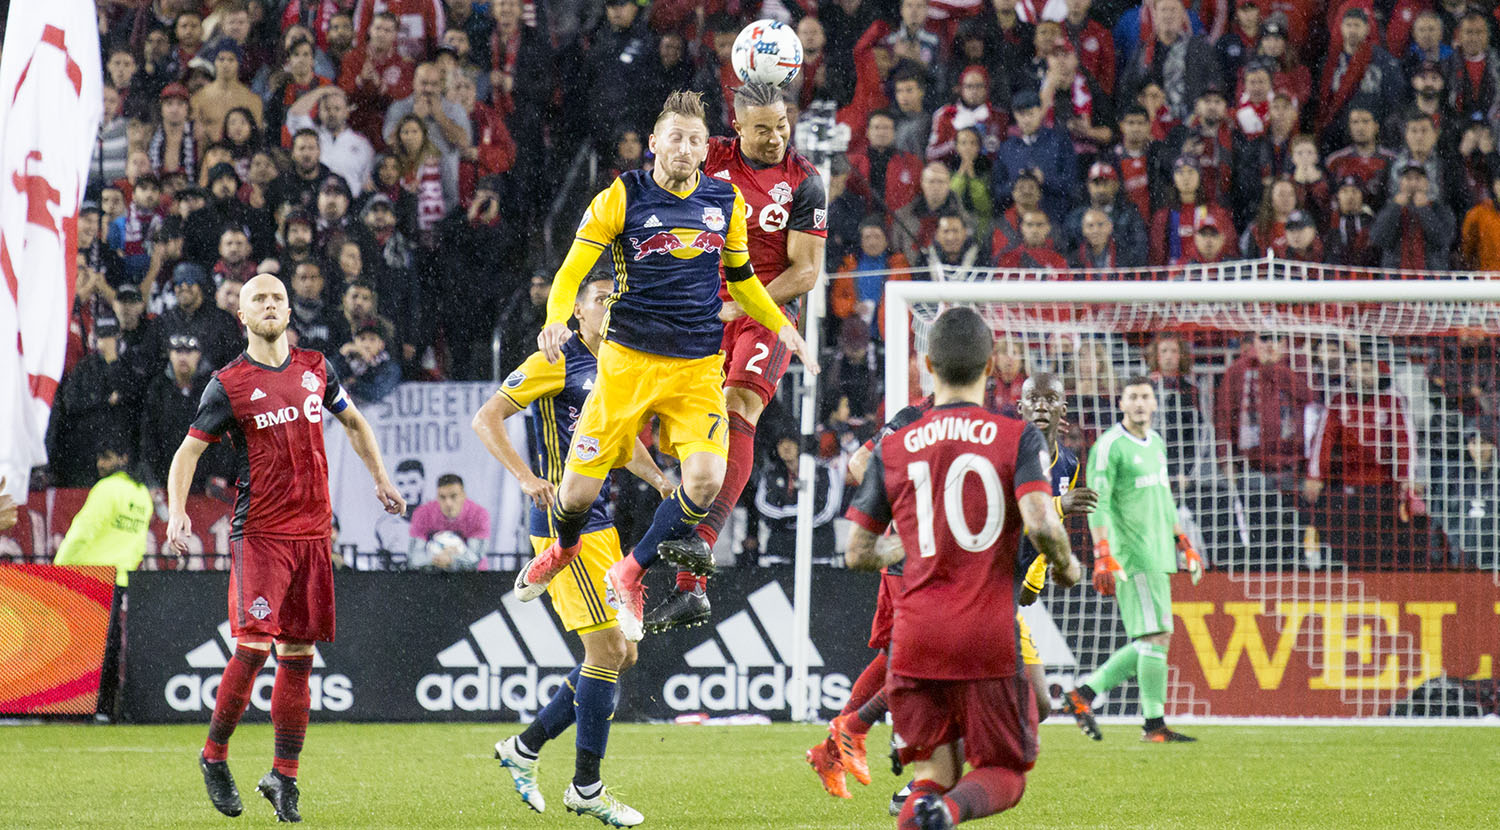 A NYRB and Toronto FC player go into the air for a header during a rainy match in 2017. Image by Dennis Marciniak of denMAR Media.